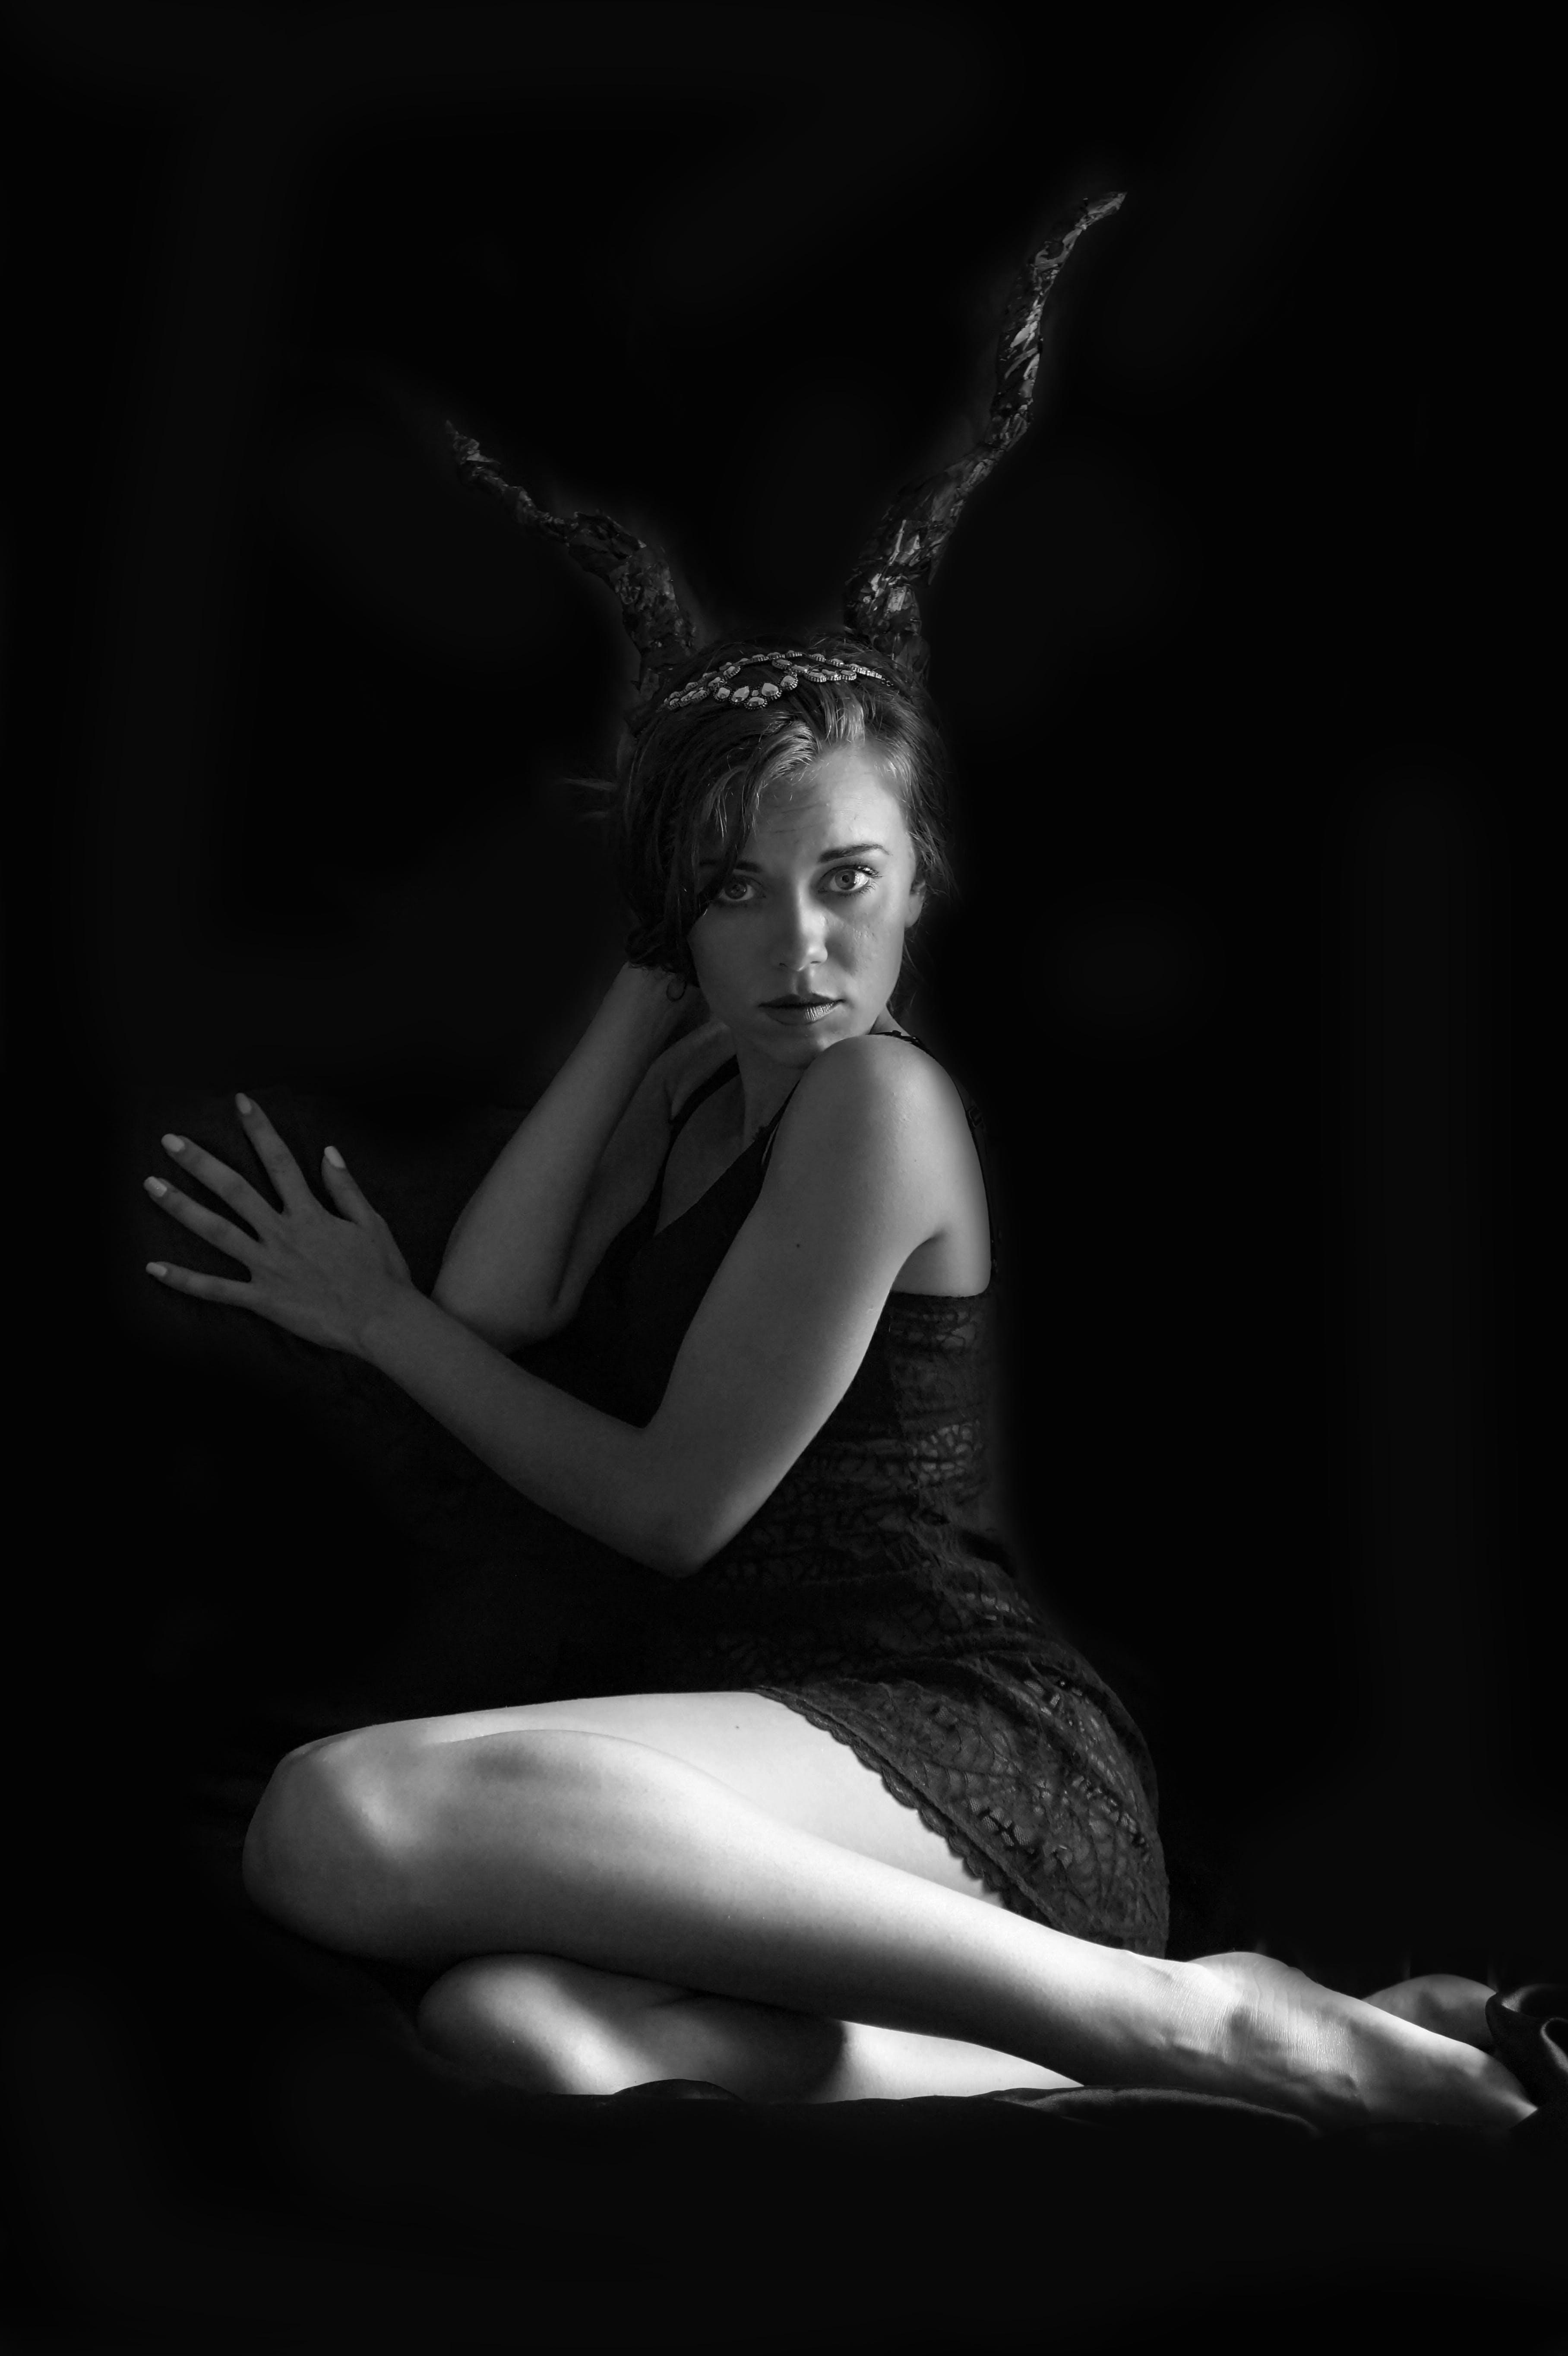 Greyscale Photography of Woman Wearing Strapless Dress